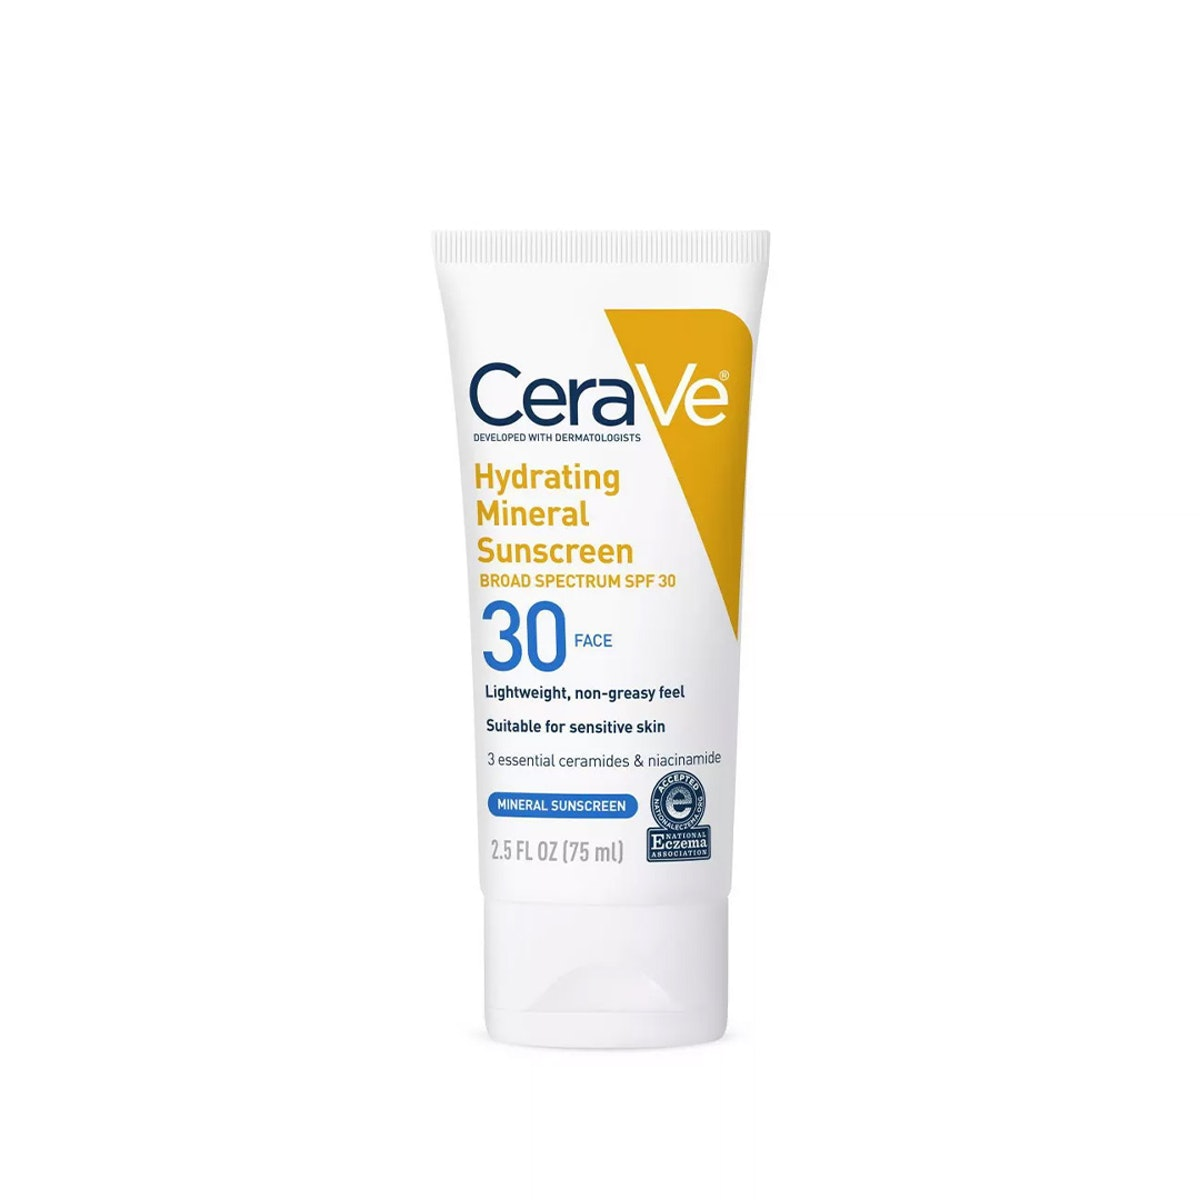 Hydrating Mineral Sunscreen SPF 30